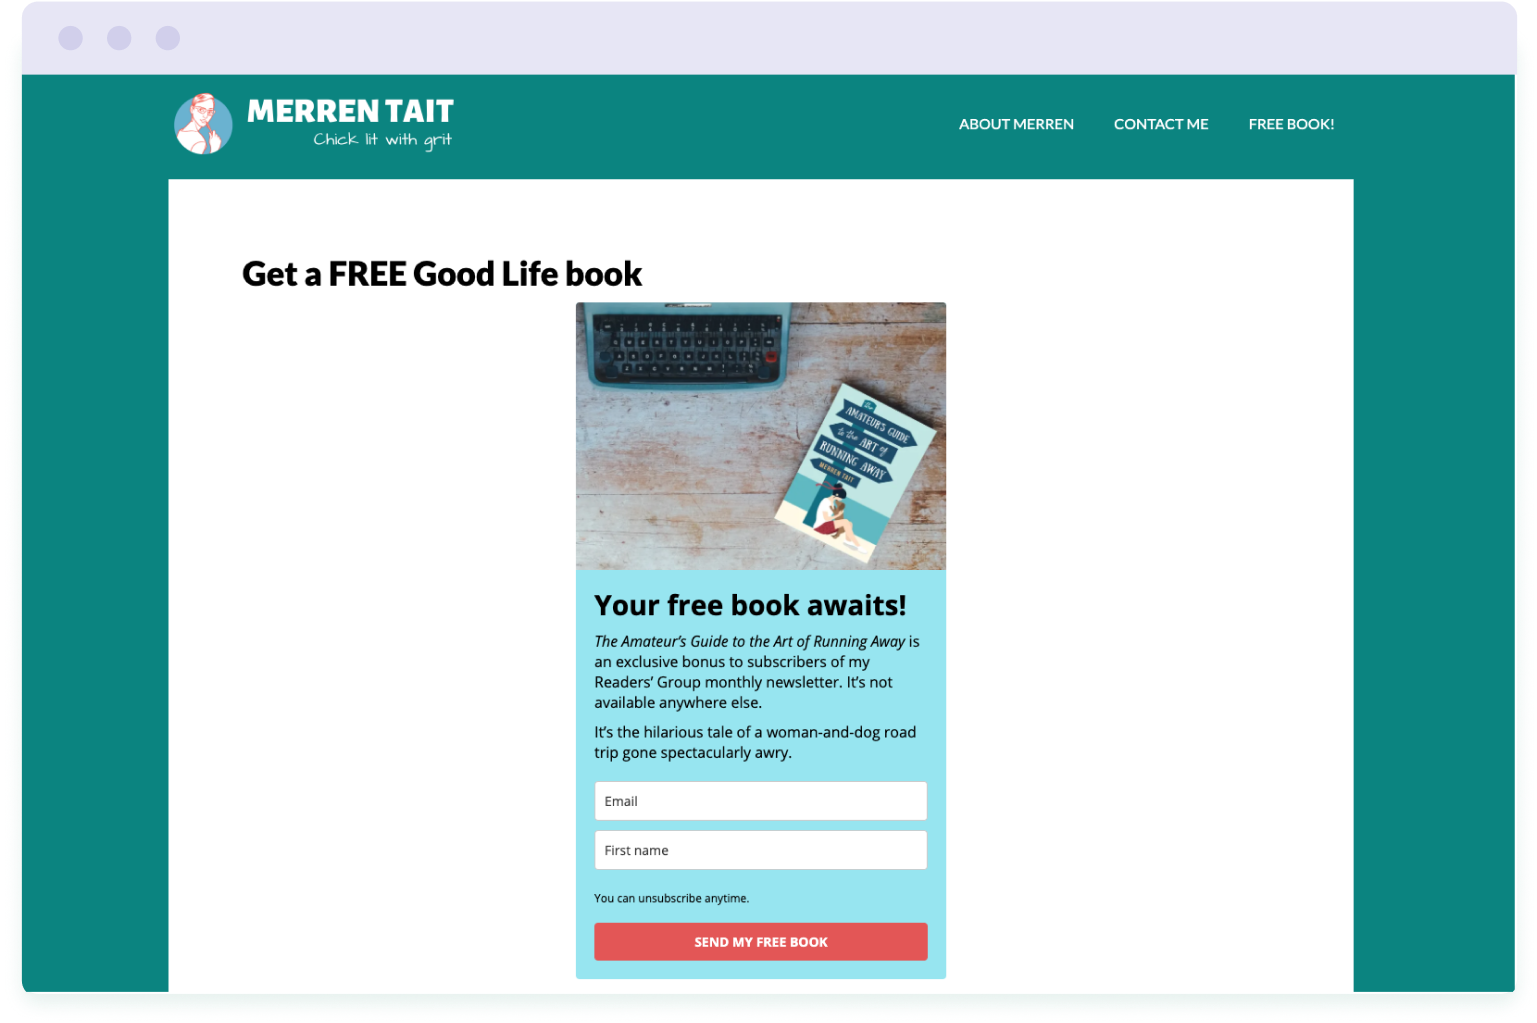 Example of a landing page designed to convert website visitors into subscribers on Merren Tait's author website